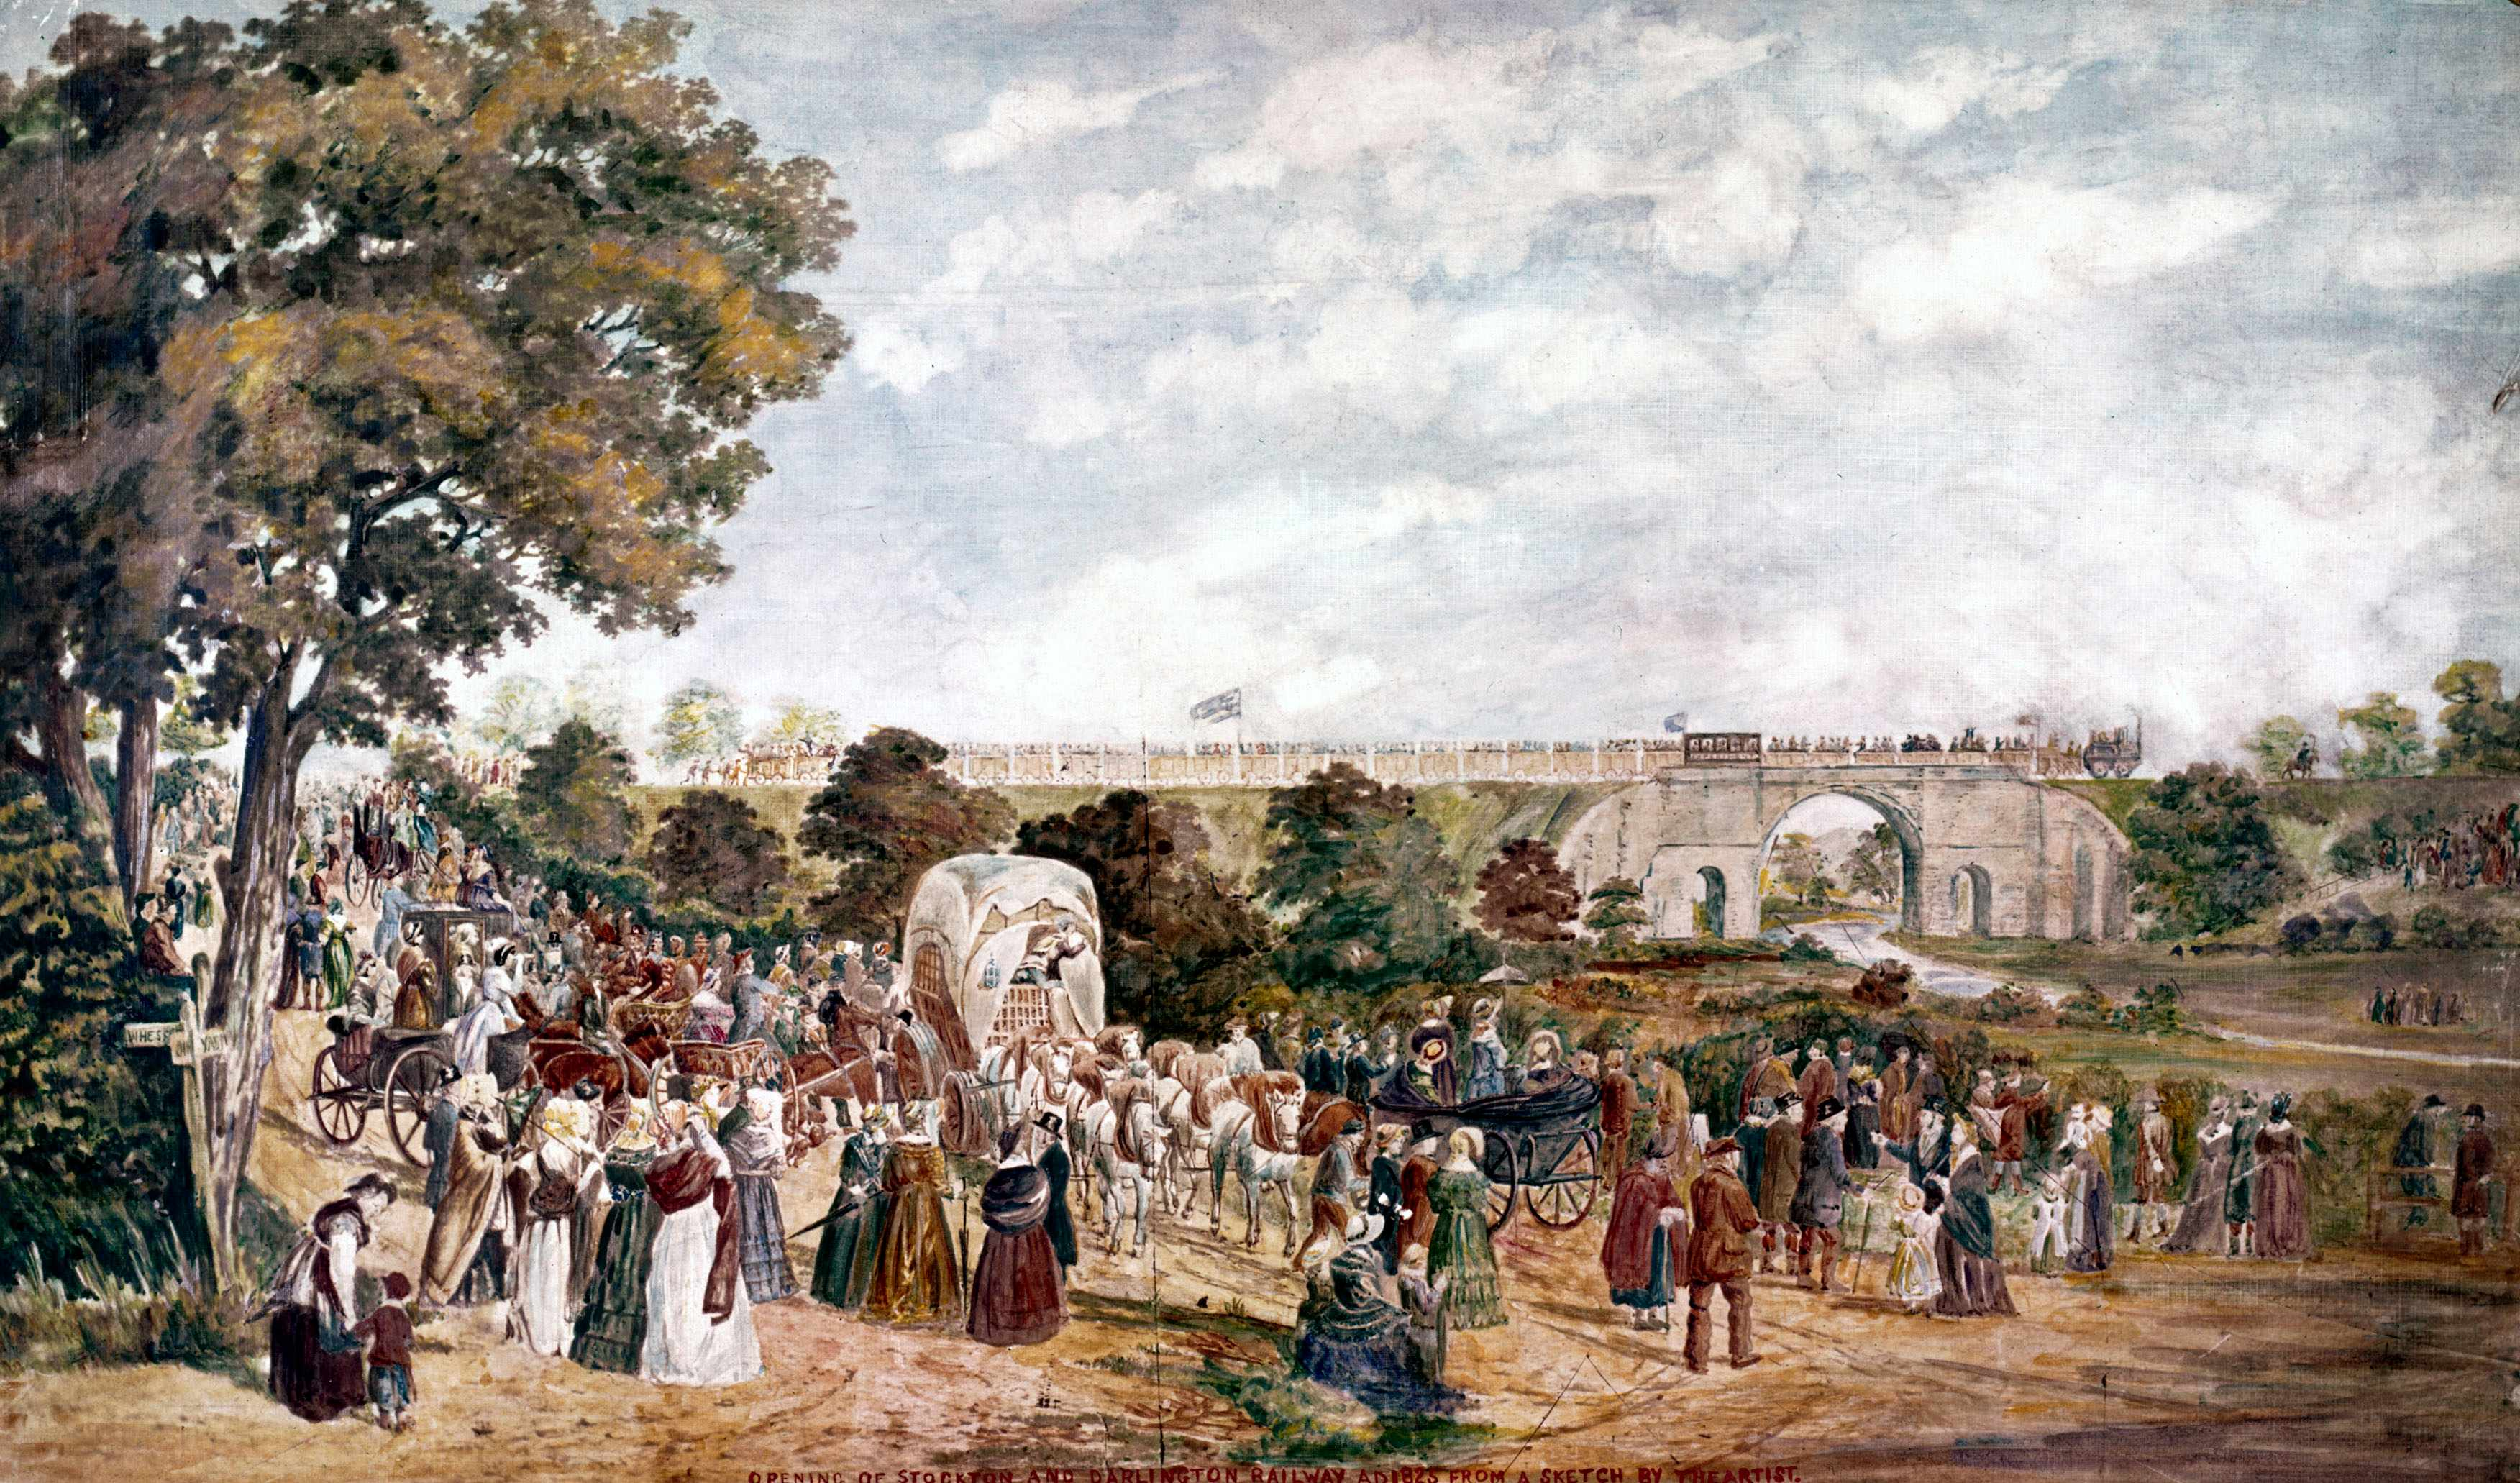 Watercolour by John Dobbin showing crowds gathered at the opening of the Stockton & Darlington Railway. (Photo by SSPL/Getty Images)